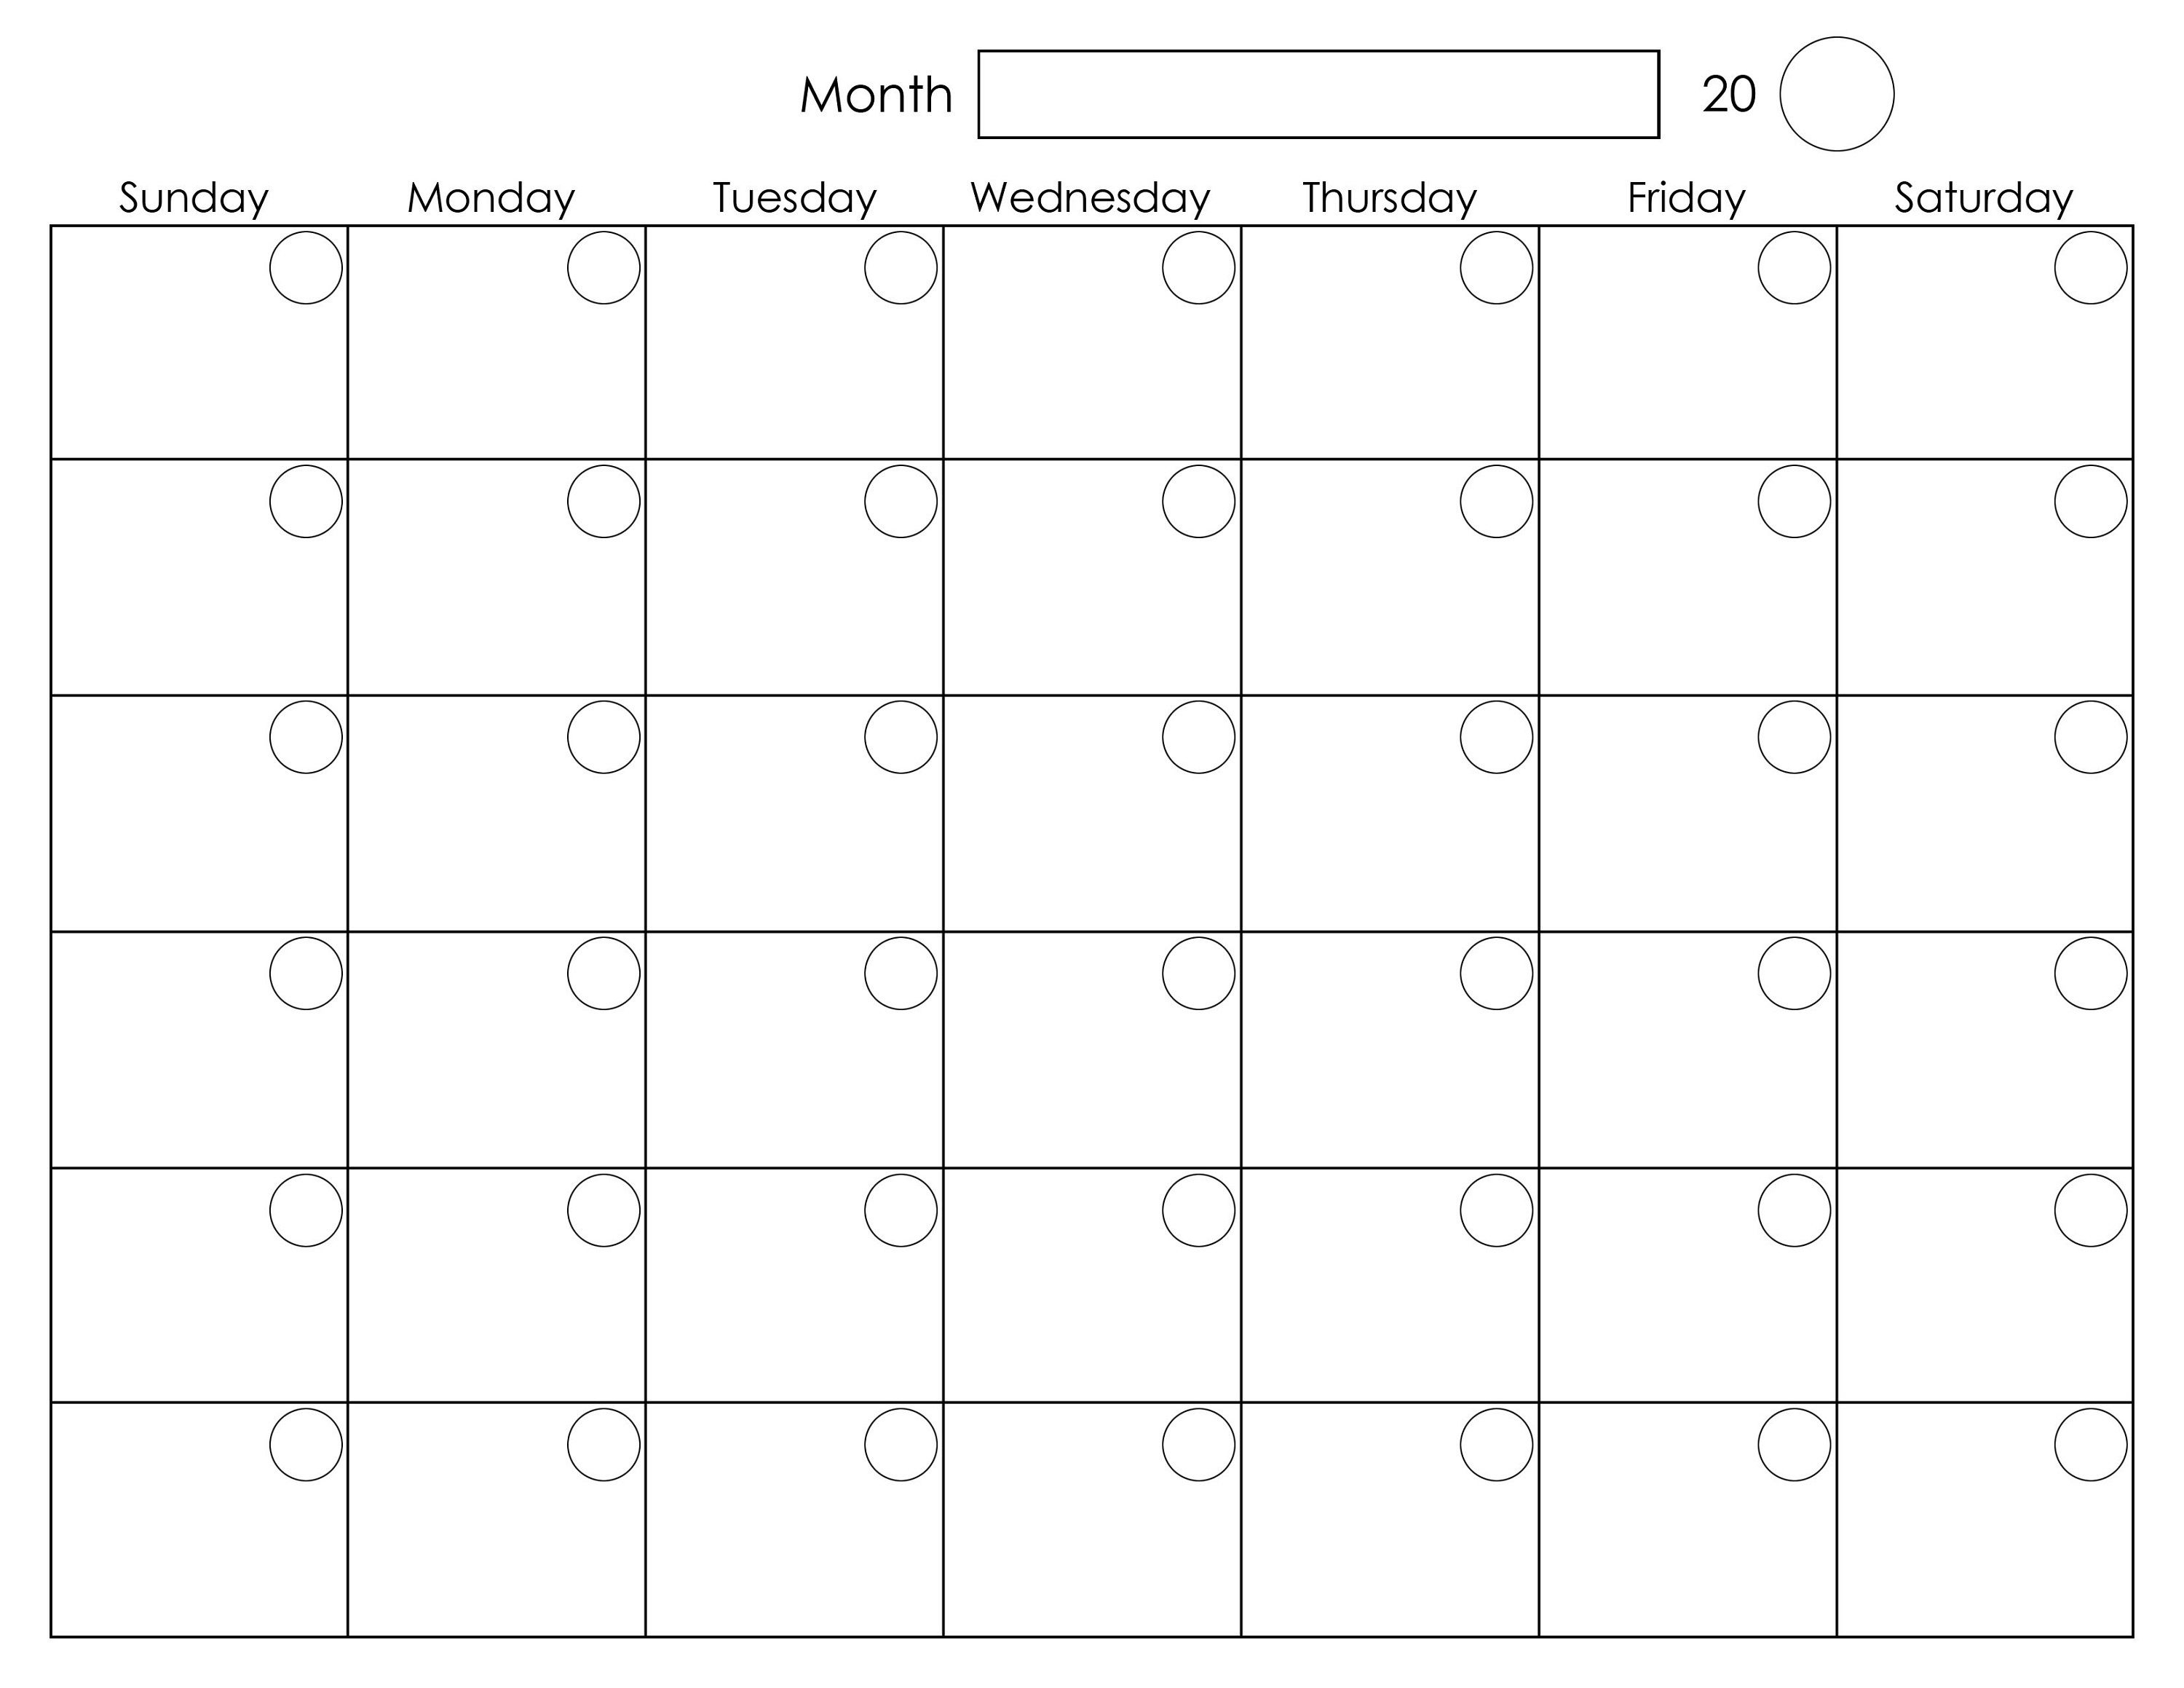 Printable Blank Monthly Calendar | Calendar Template Printable for Printable Monthly Calendar Planner Template